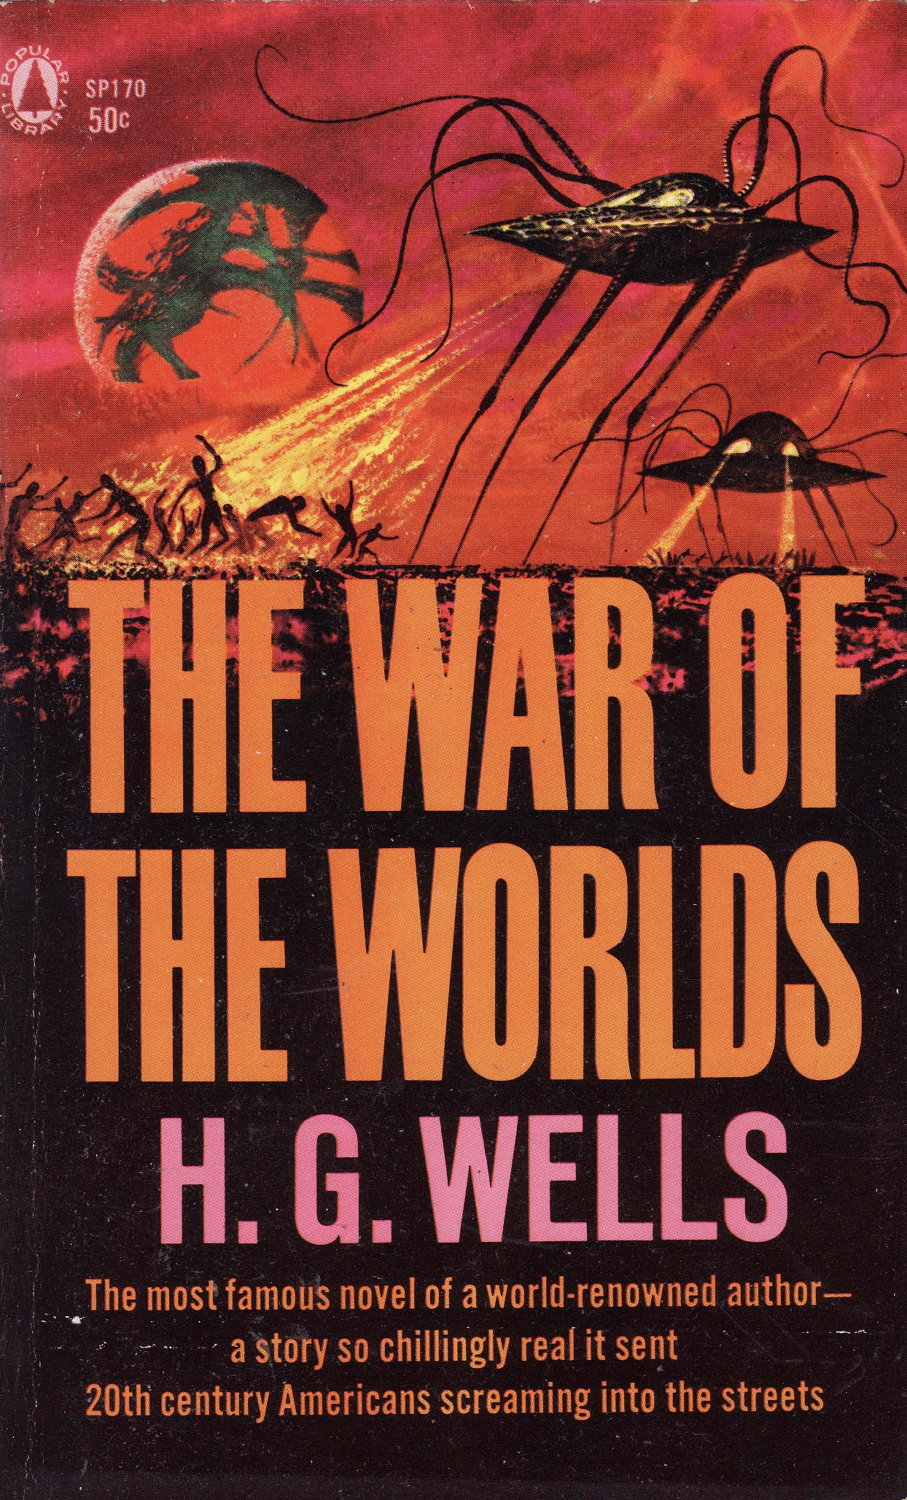 the-war-of-the-worlds-h-g-wells-book-cover